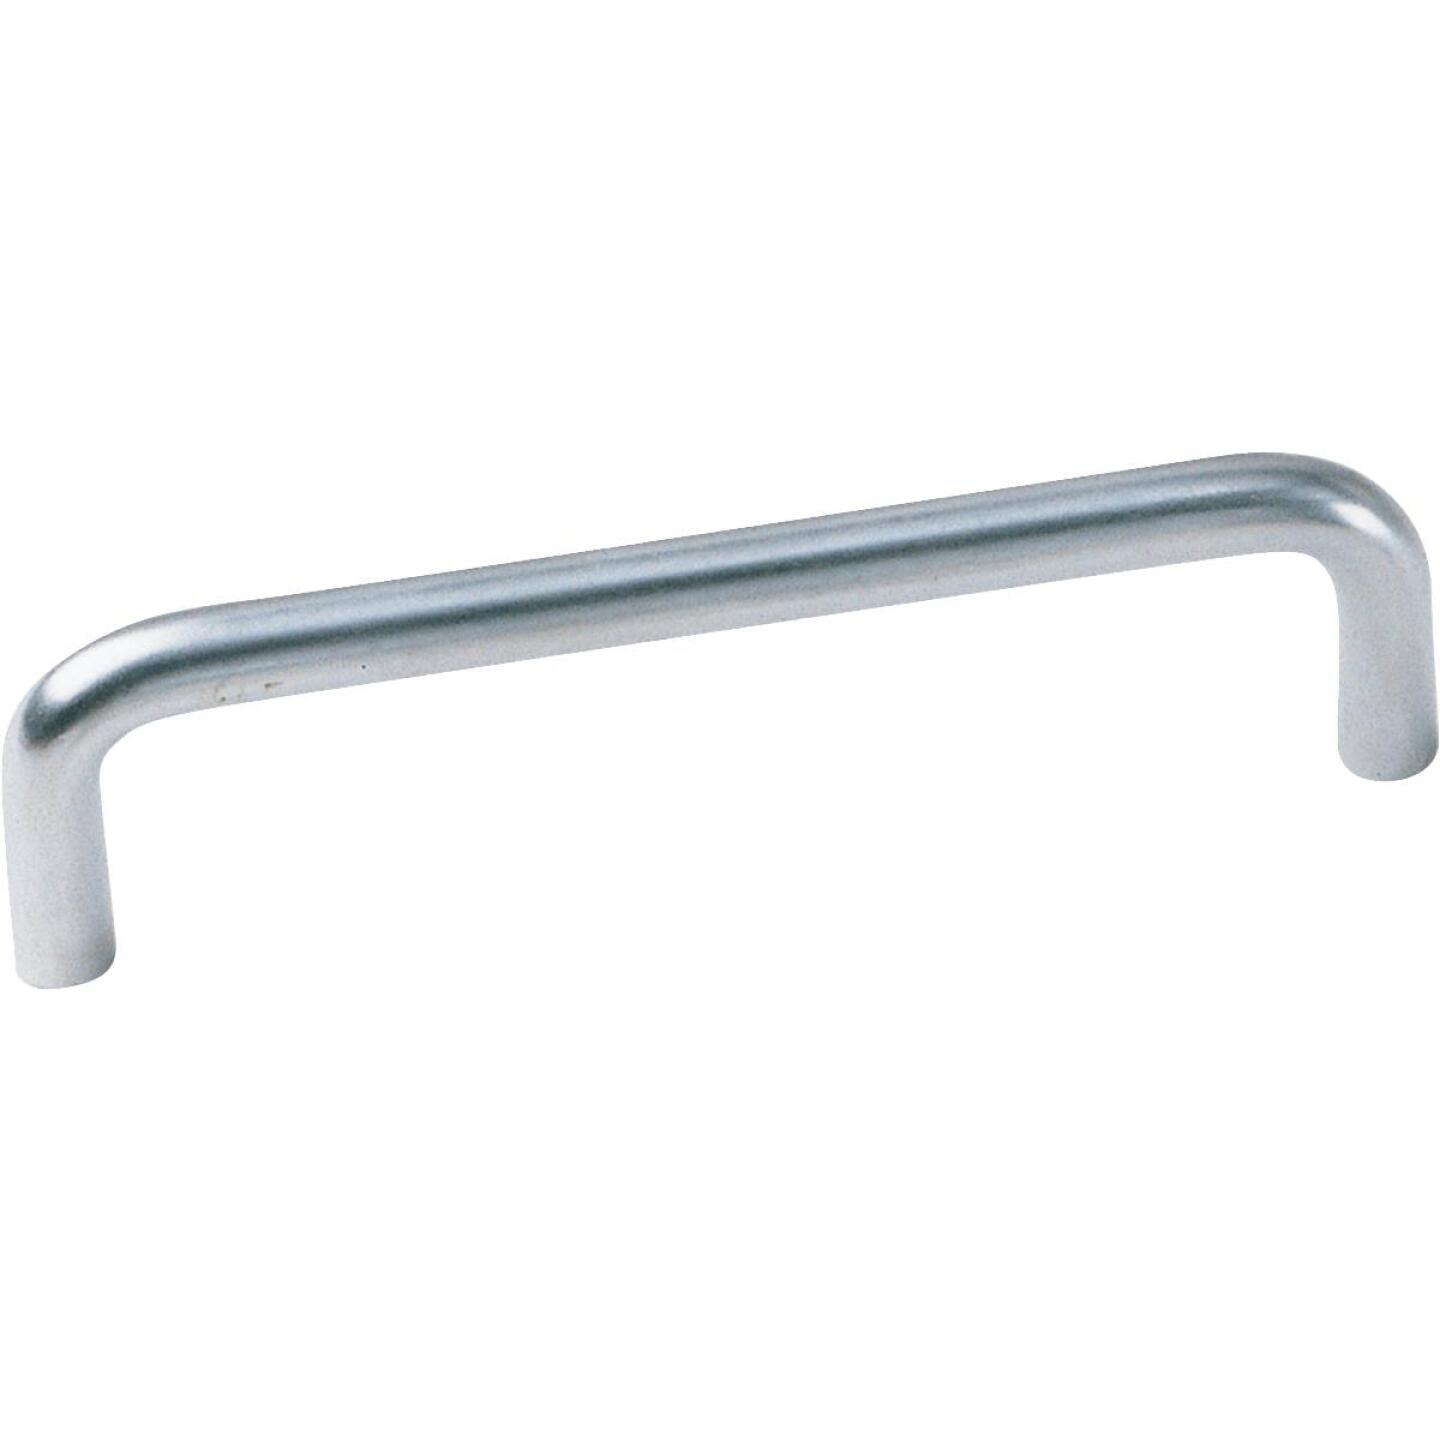 Laurey Satin Chrome Contemporary 4 In. Cabinet Pull Image 1